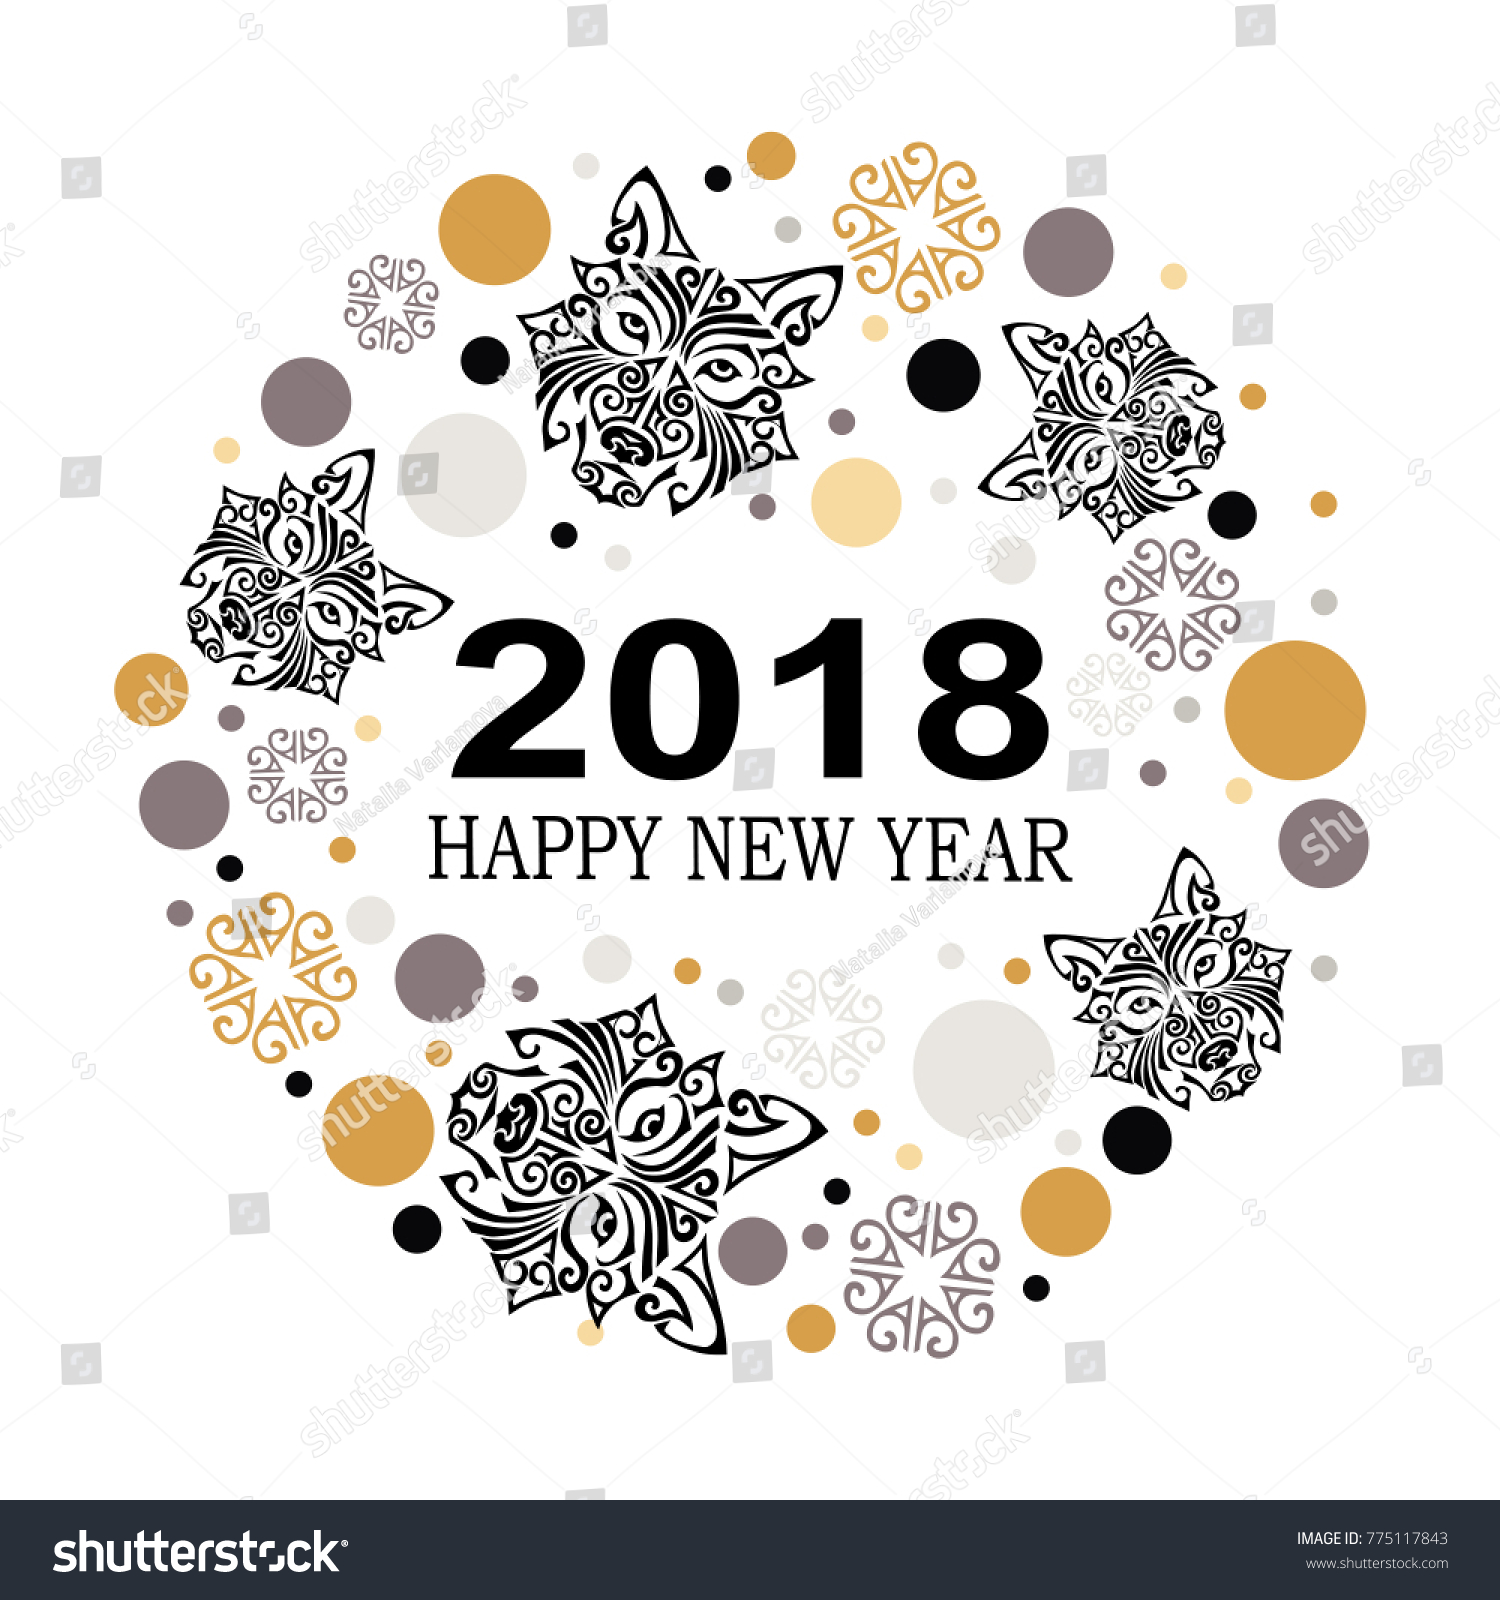 2018 New Year Card Husky Dogs Stock Vector (2018) 775117843 ...